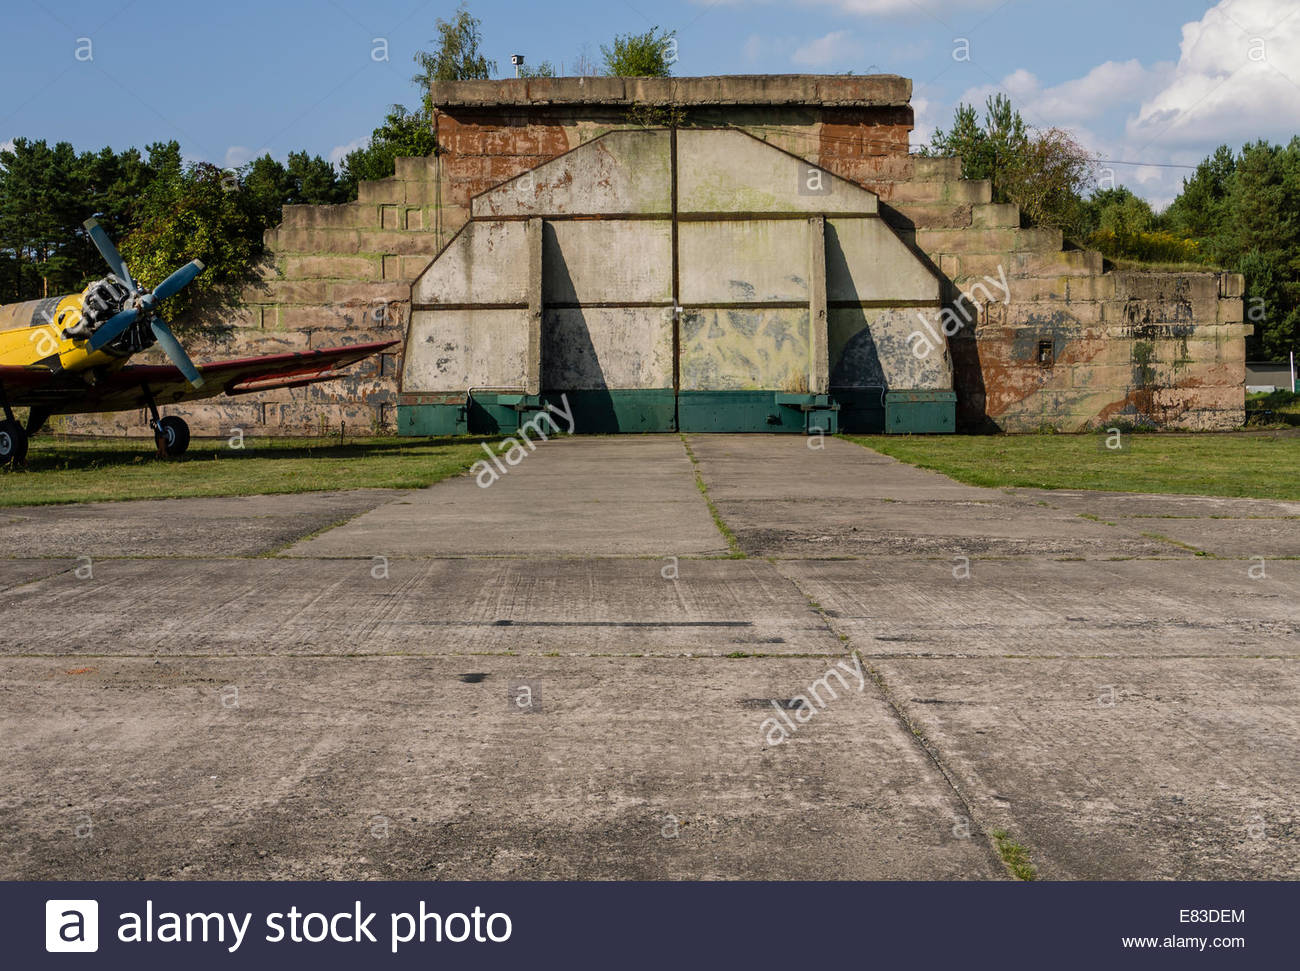 Old Soviet Airfield base at Finow  former DDR East Germany  Aircraft Hard Shelters left behind by Russians  Museum - Stock Image